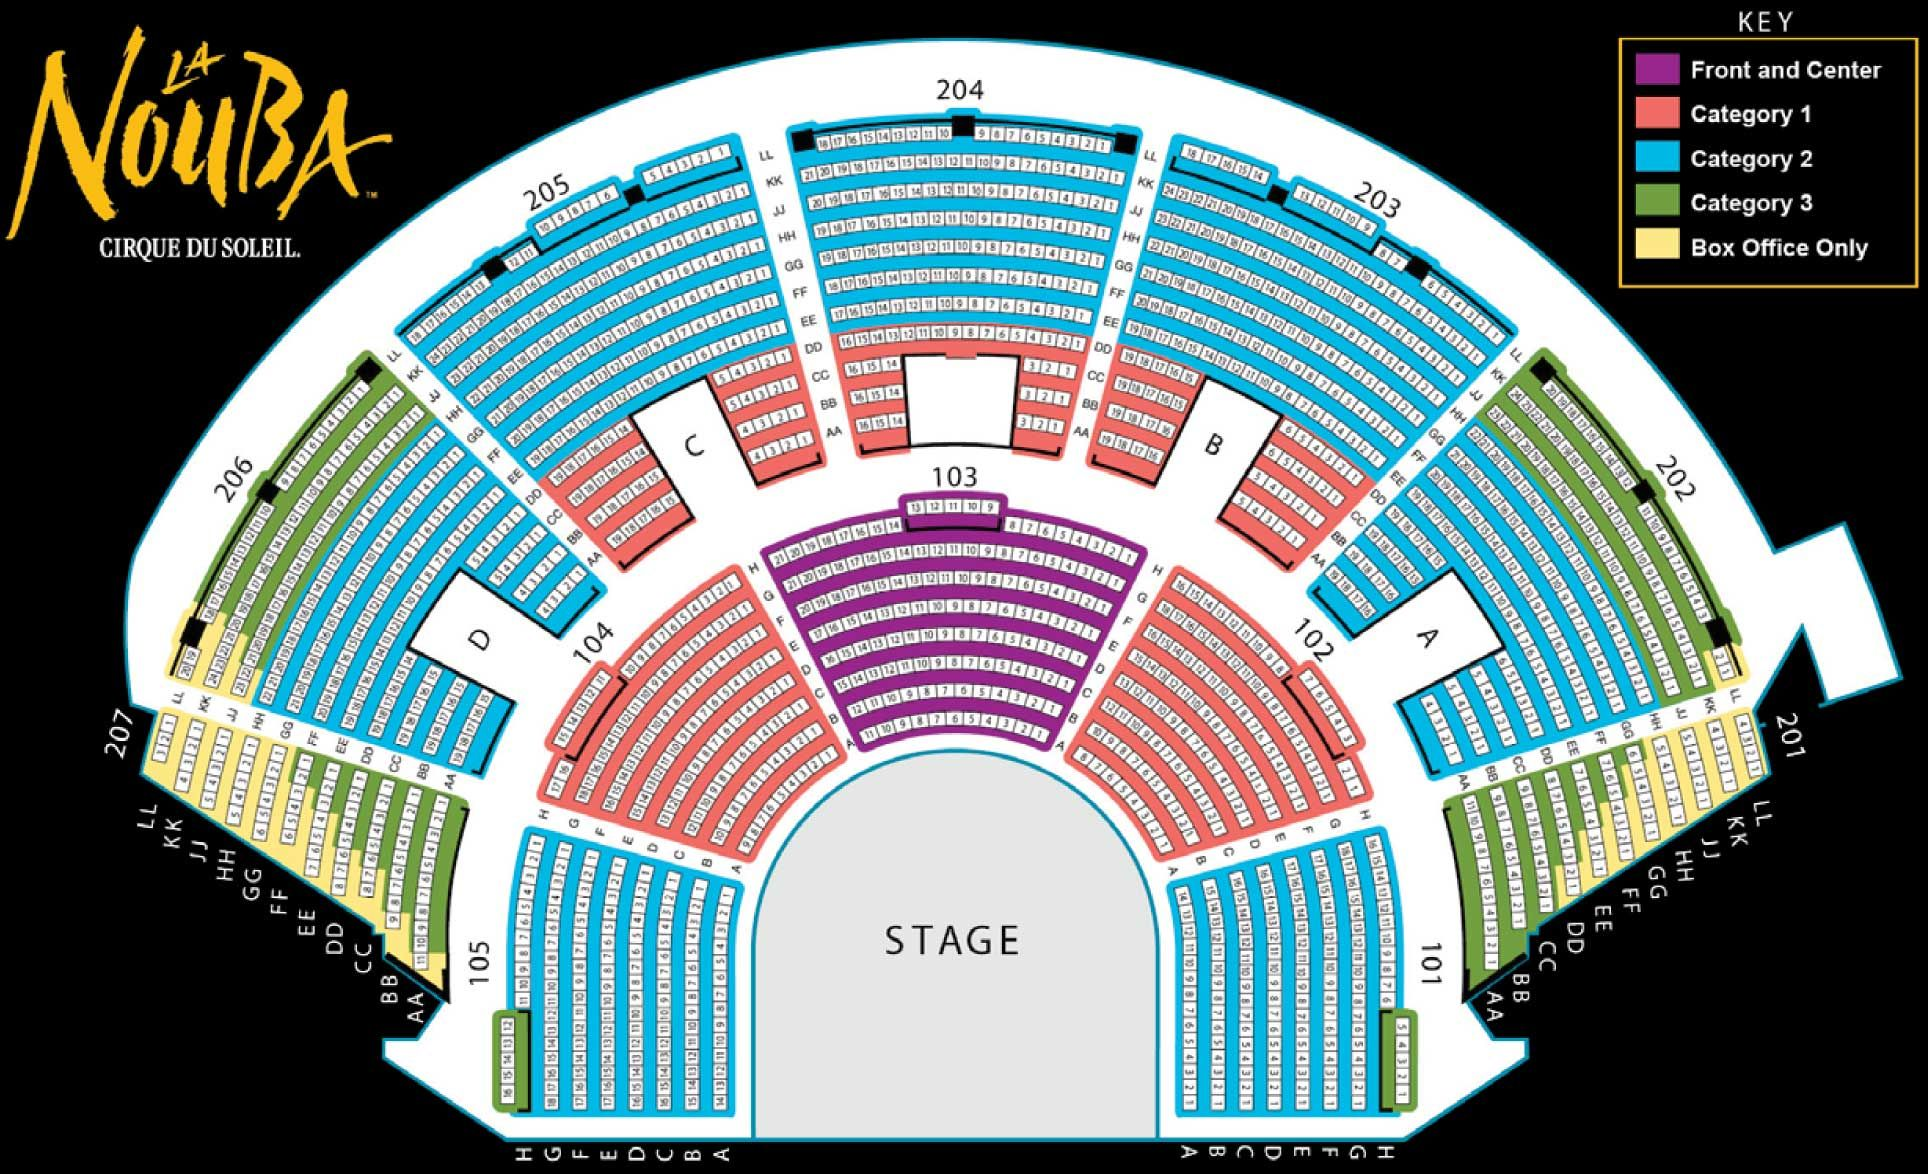 Cirque du soleil theatre seating chart disney trip other venues